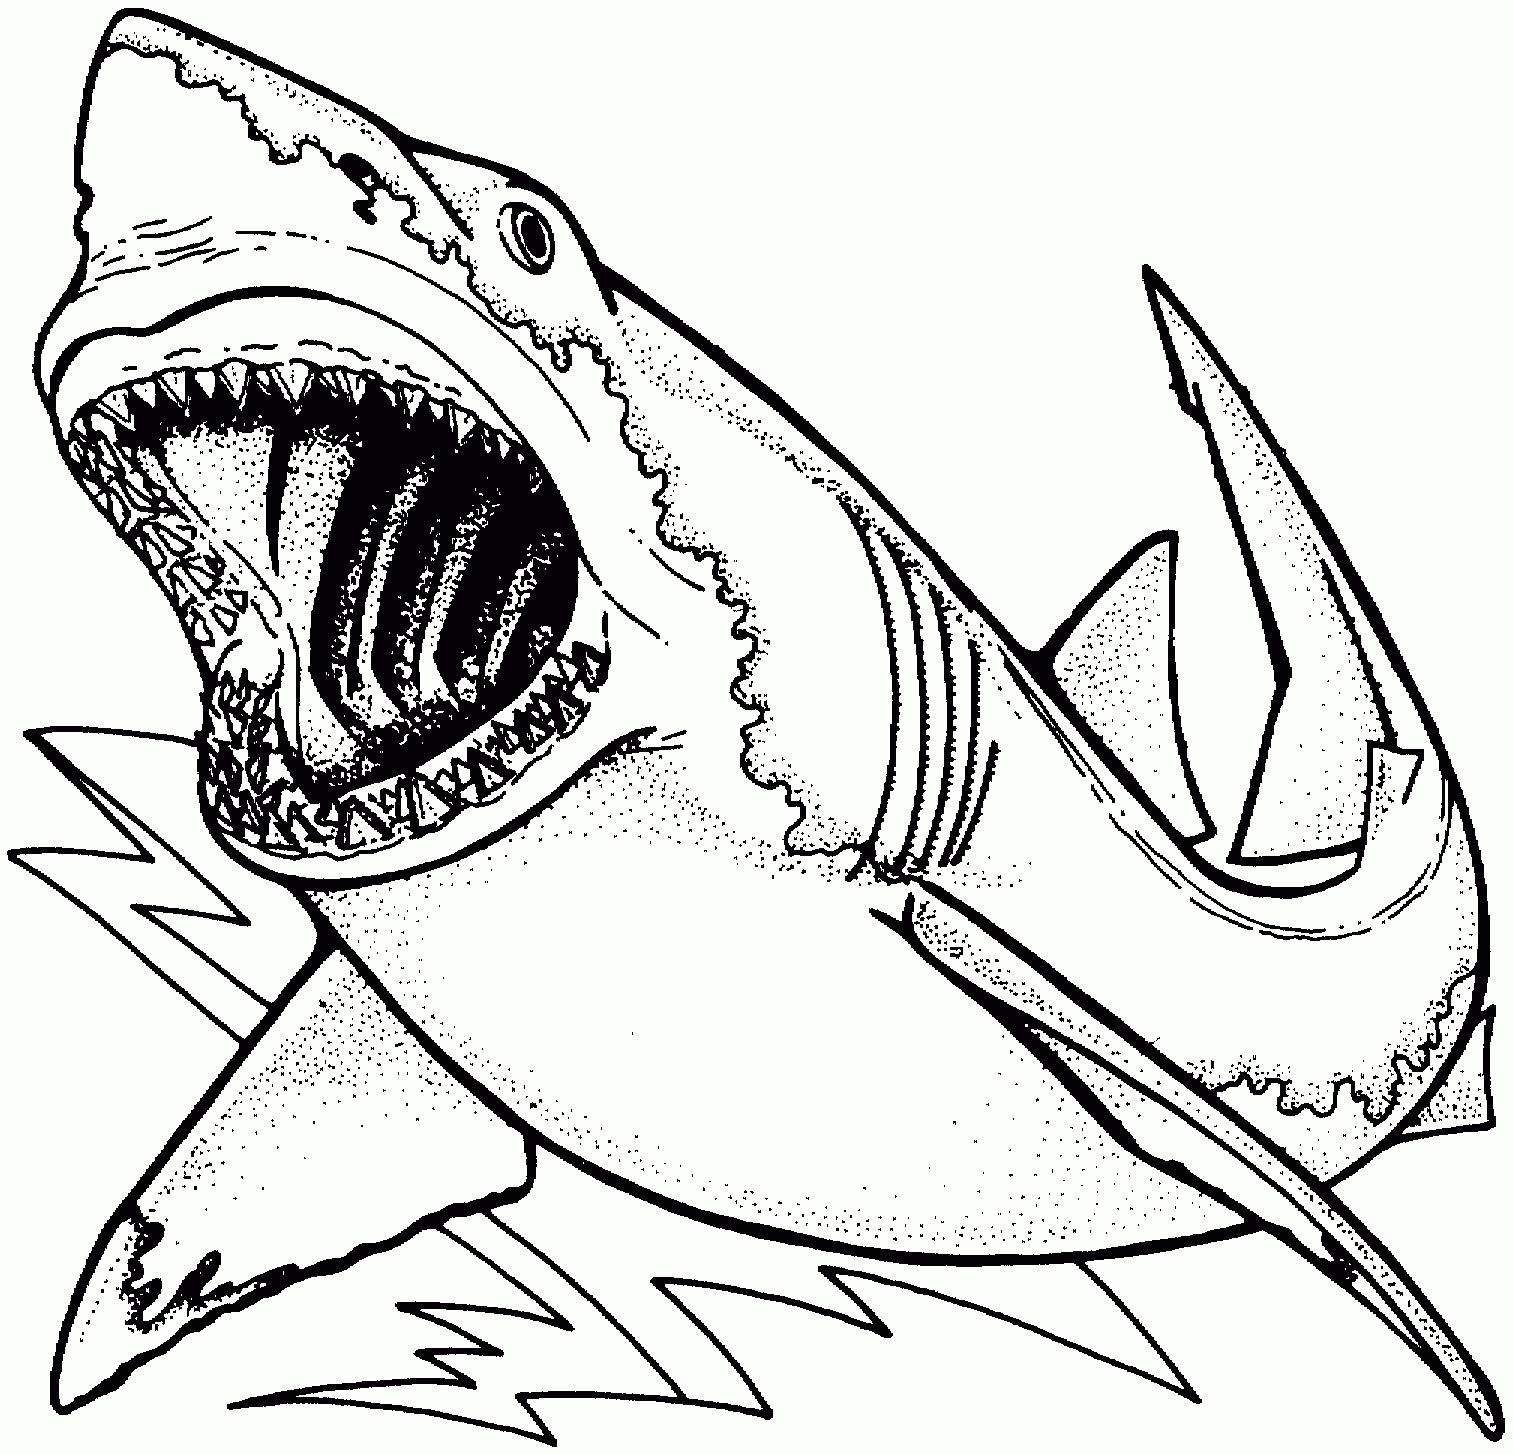 Scary Shark Coloring Pages Printable Designs Collections